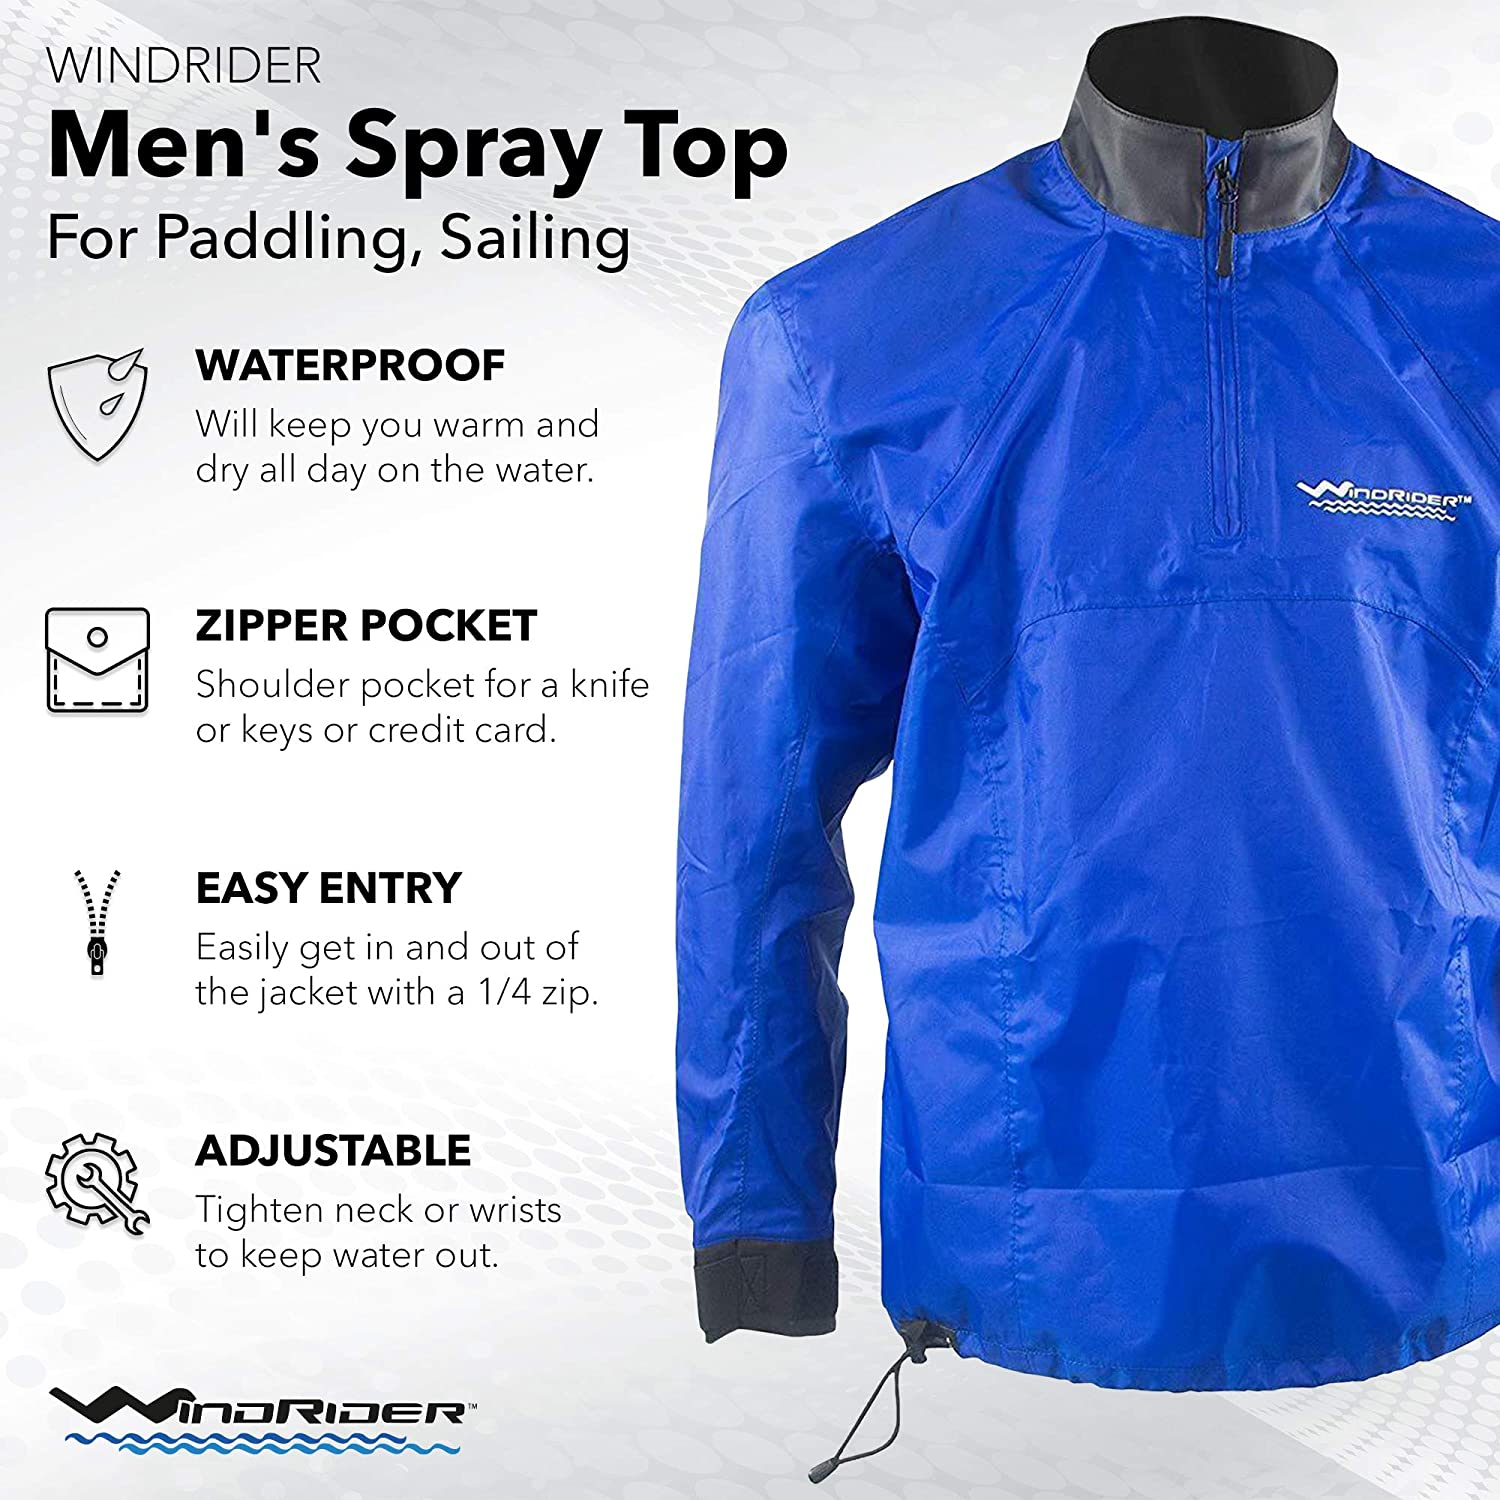 WindRider Waterproof Paddling Sailing Spray Top | Neck and Wrist Seals | Front Zipper | Shoulder Pocket: Clothing